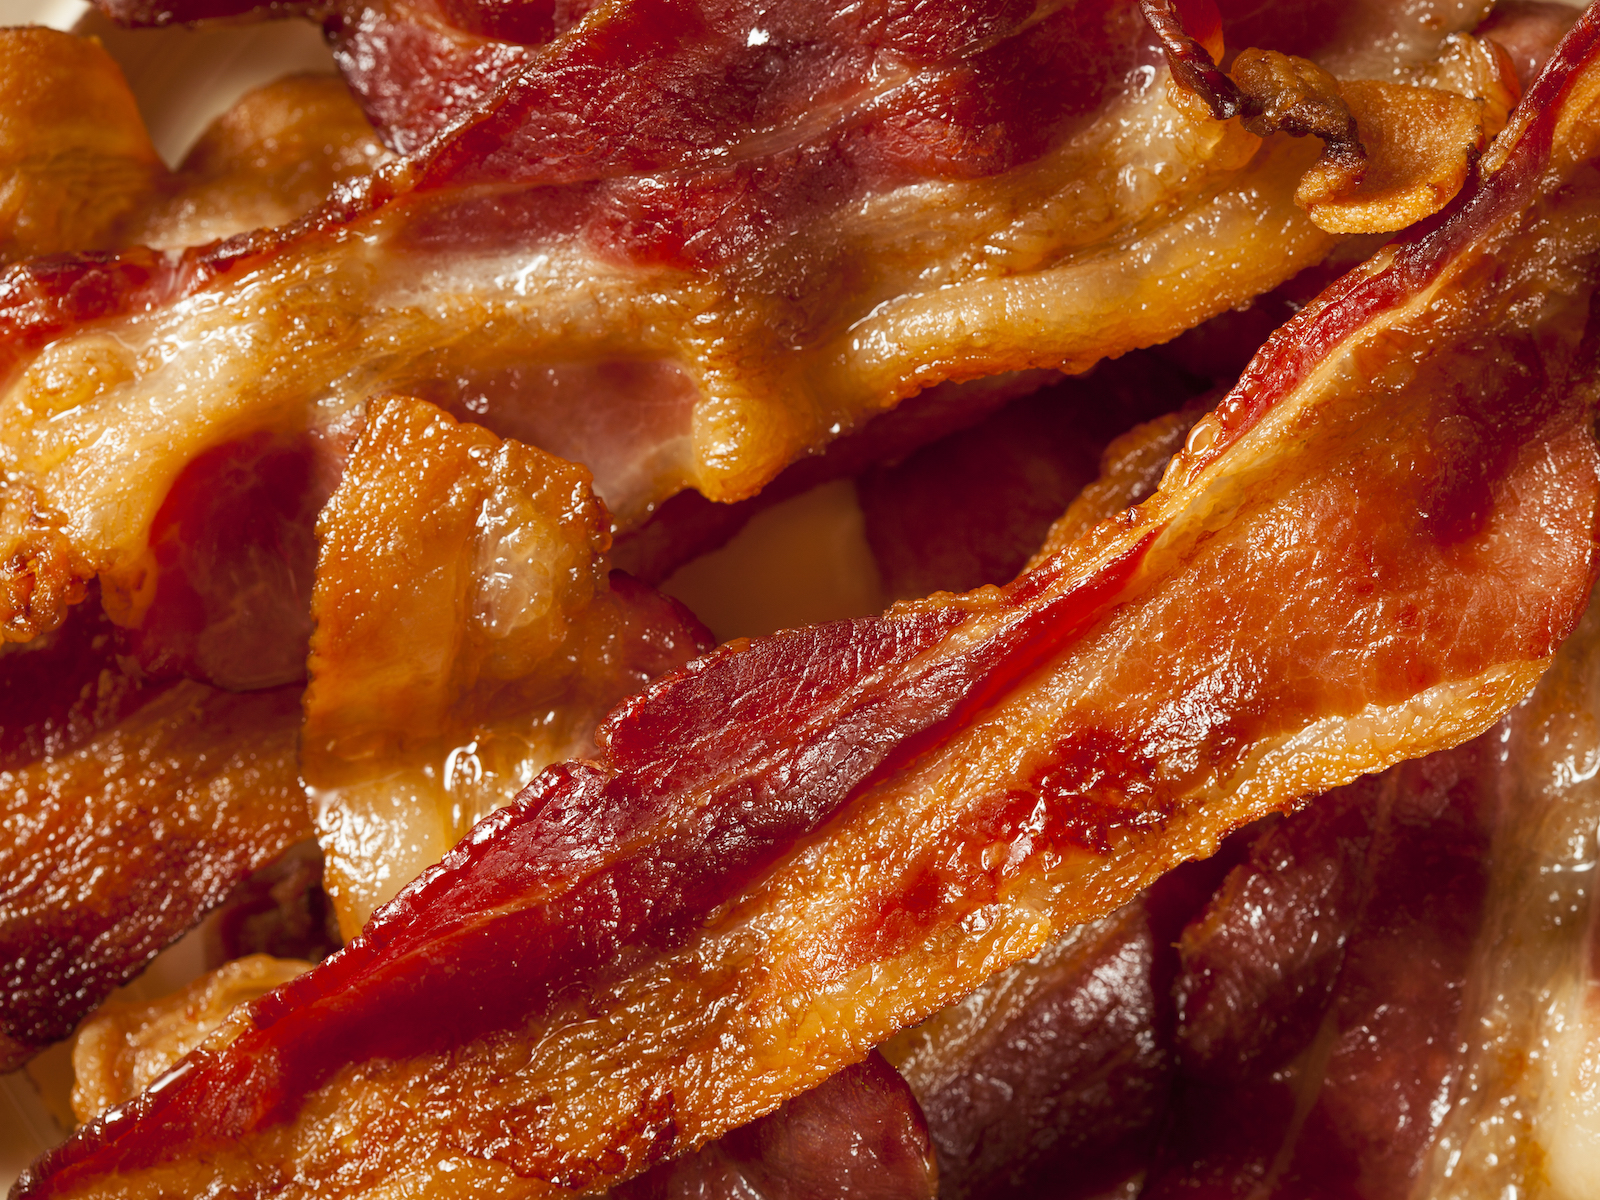 McDonald's 'Bacon Hour' Offers a Free Side of Bacon With Any Item